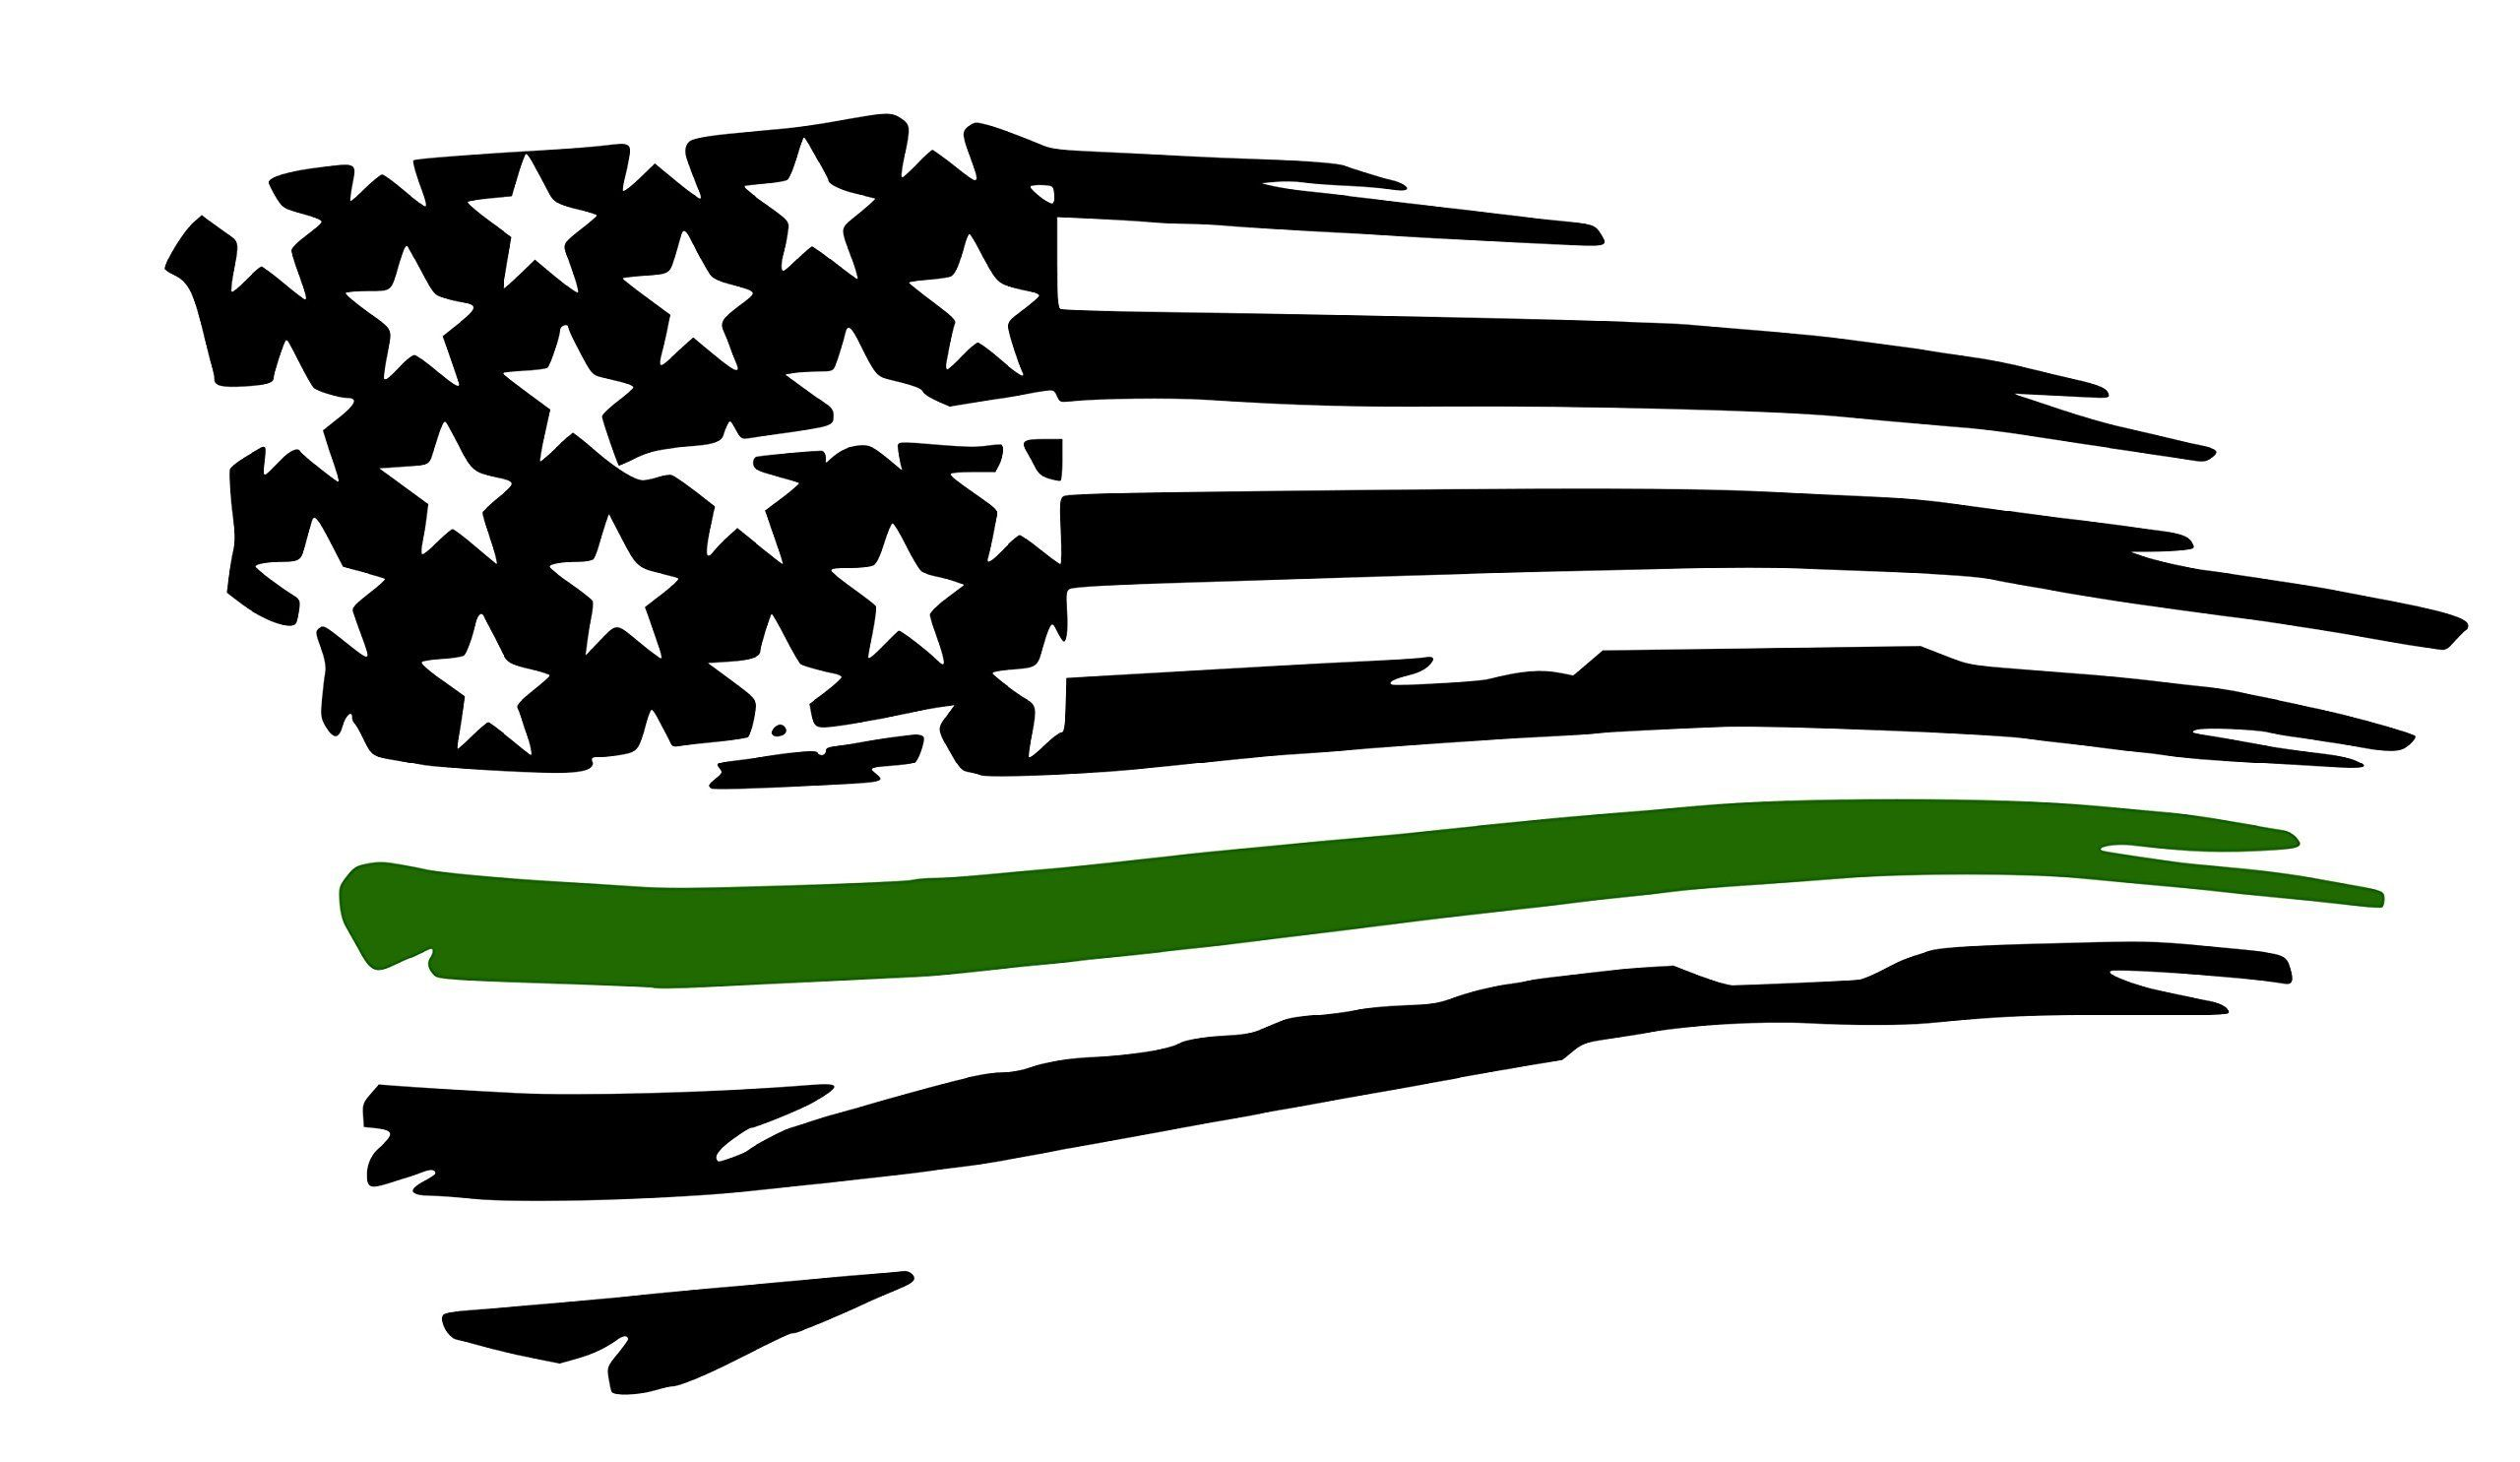 Army Tattered Flag Decal Military Pride. Show your love